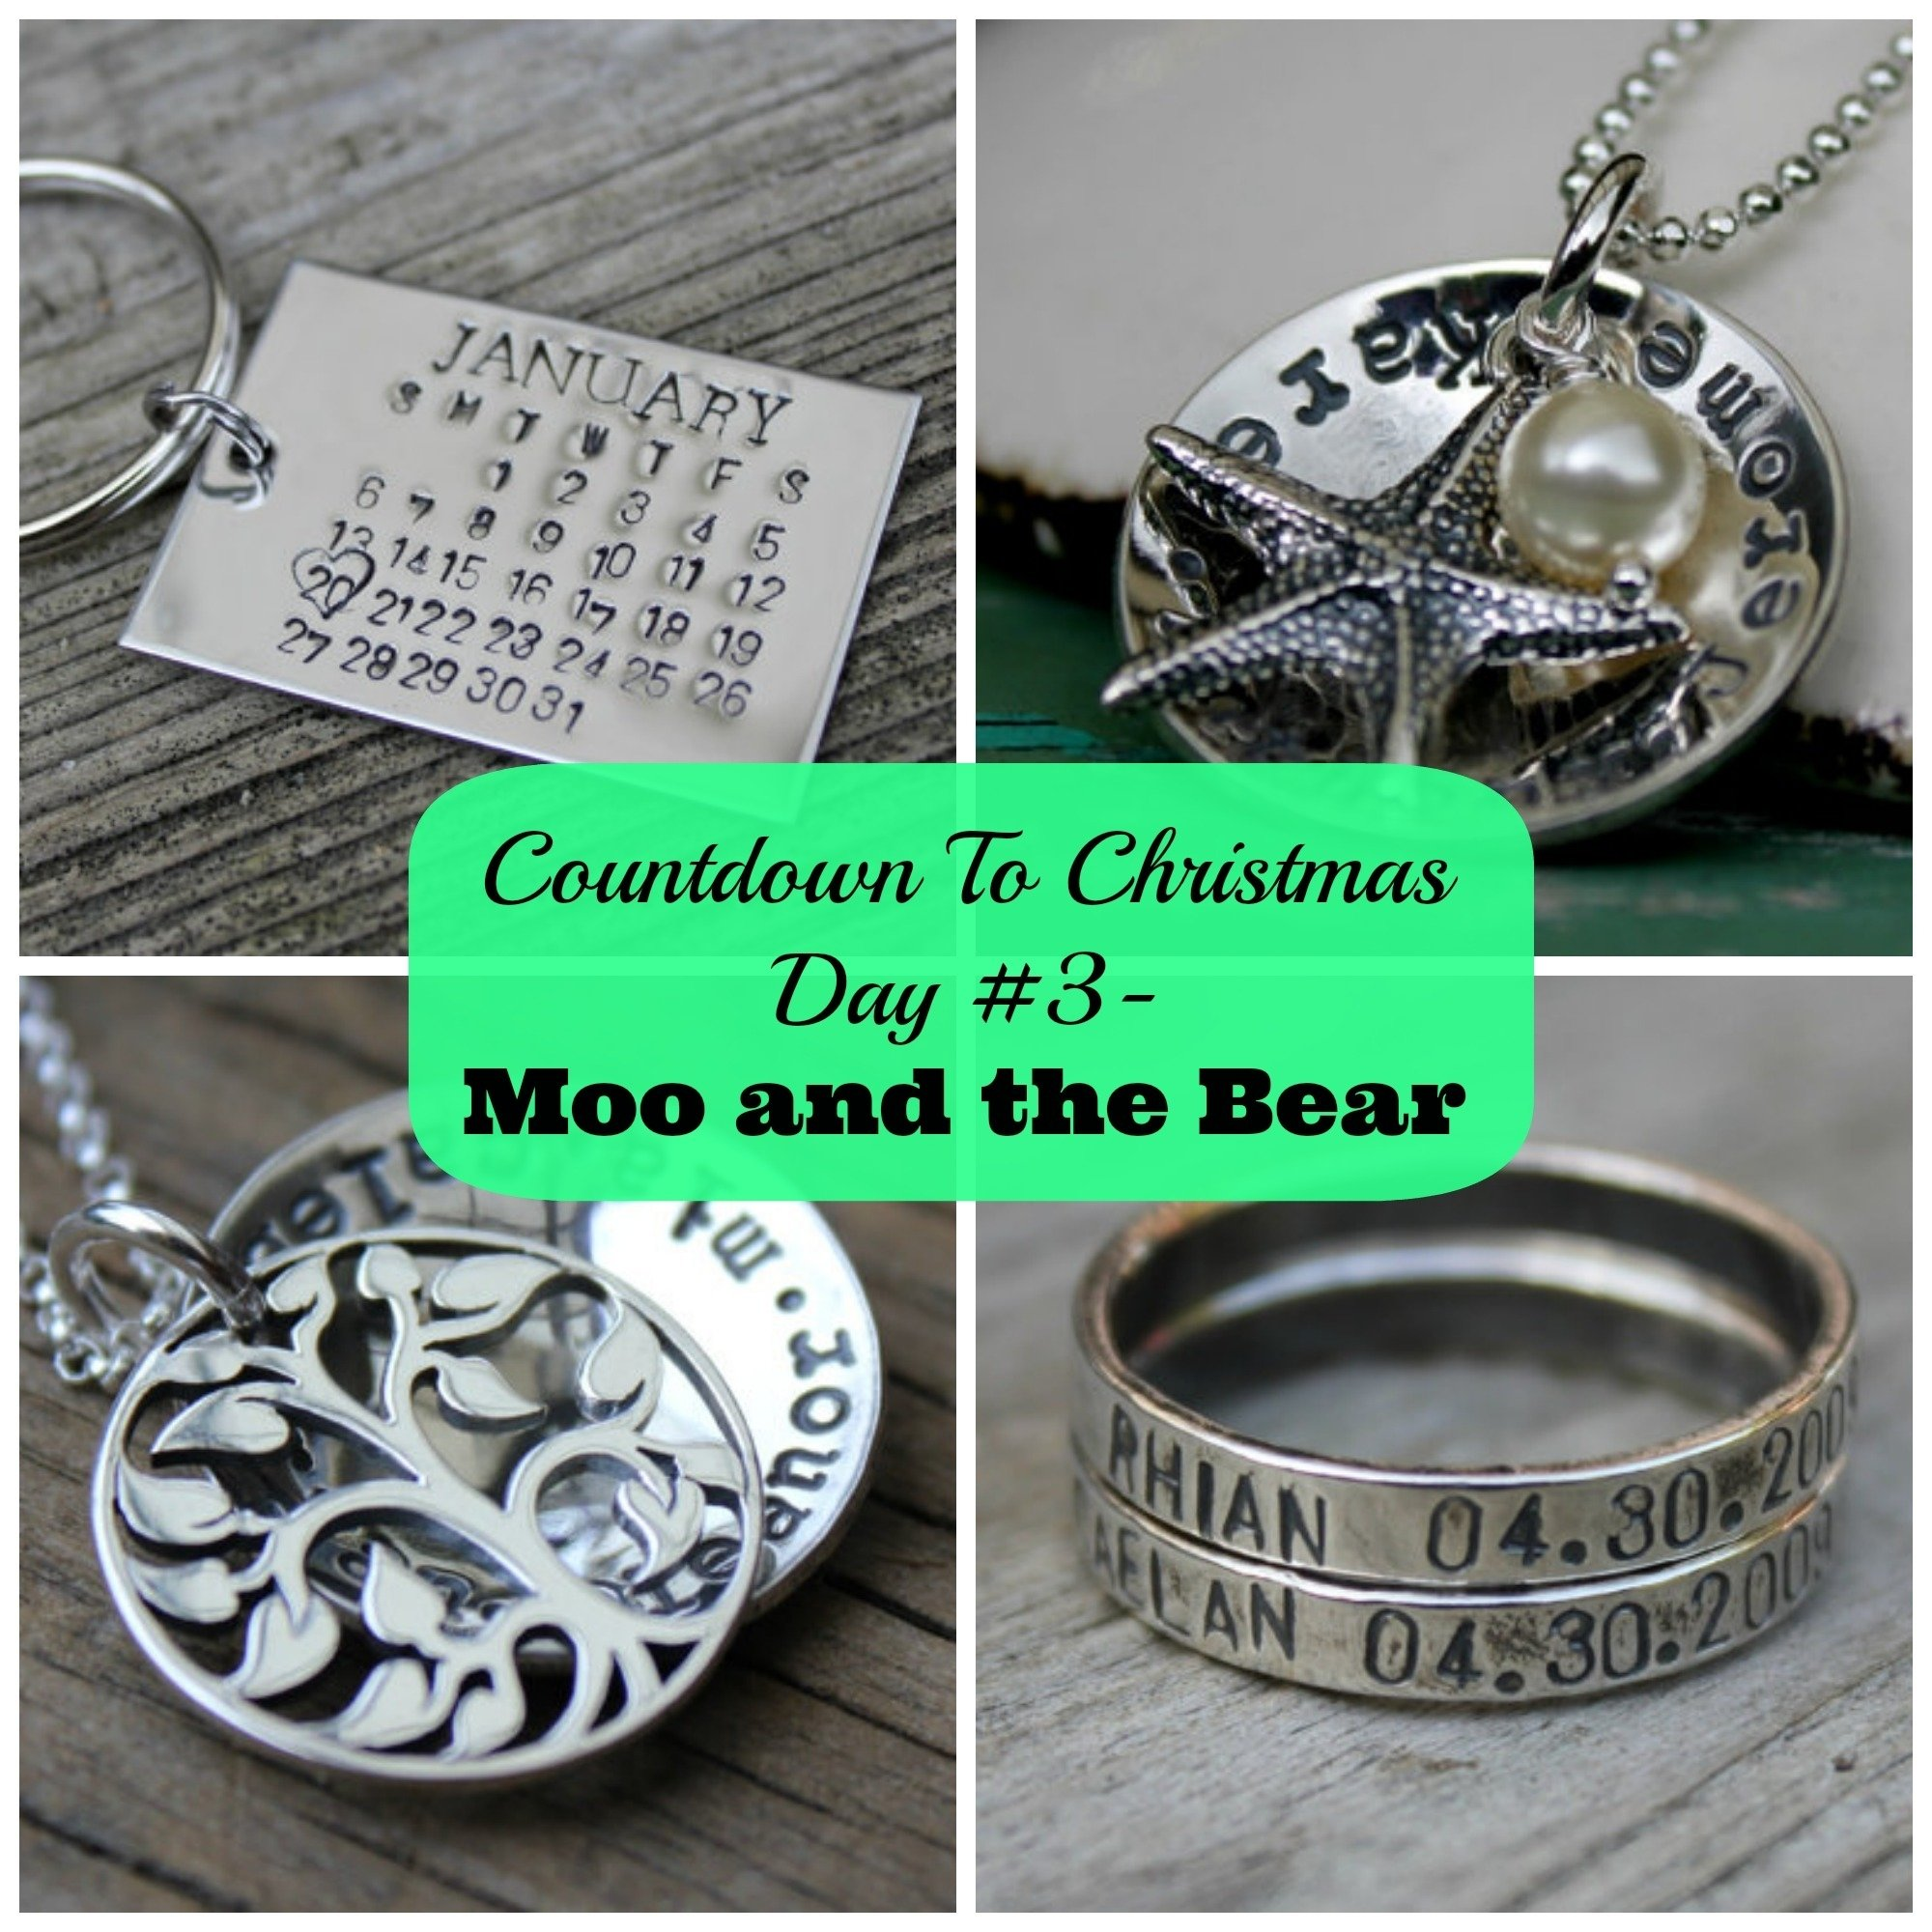 10 Most Recommended Christmas Gift Idea For Boyfriend